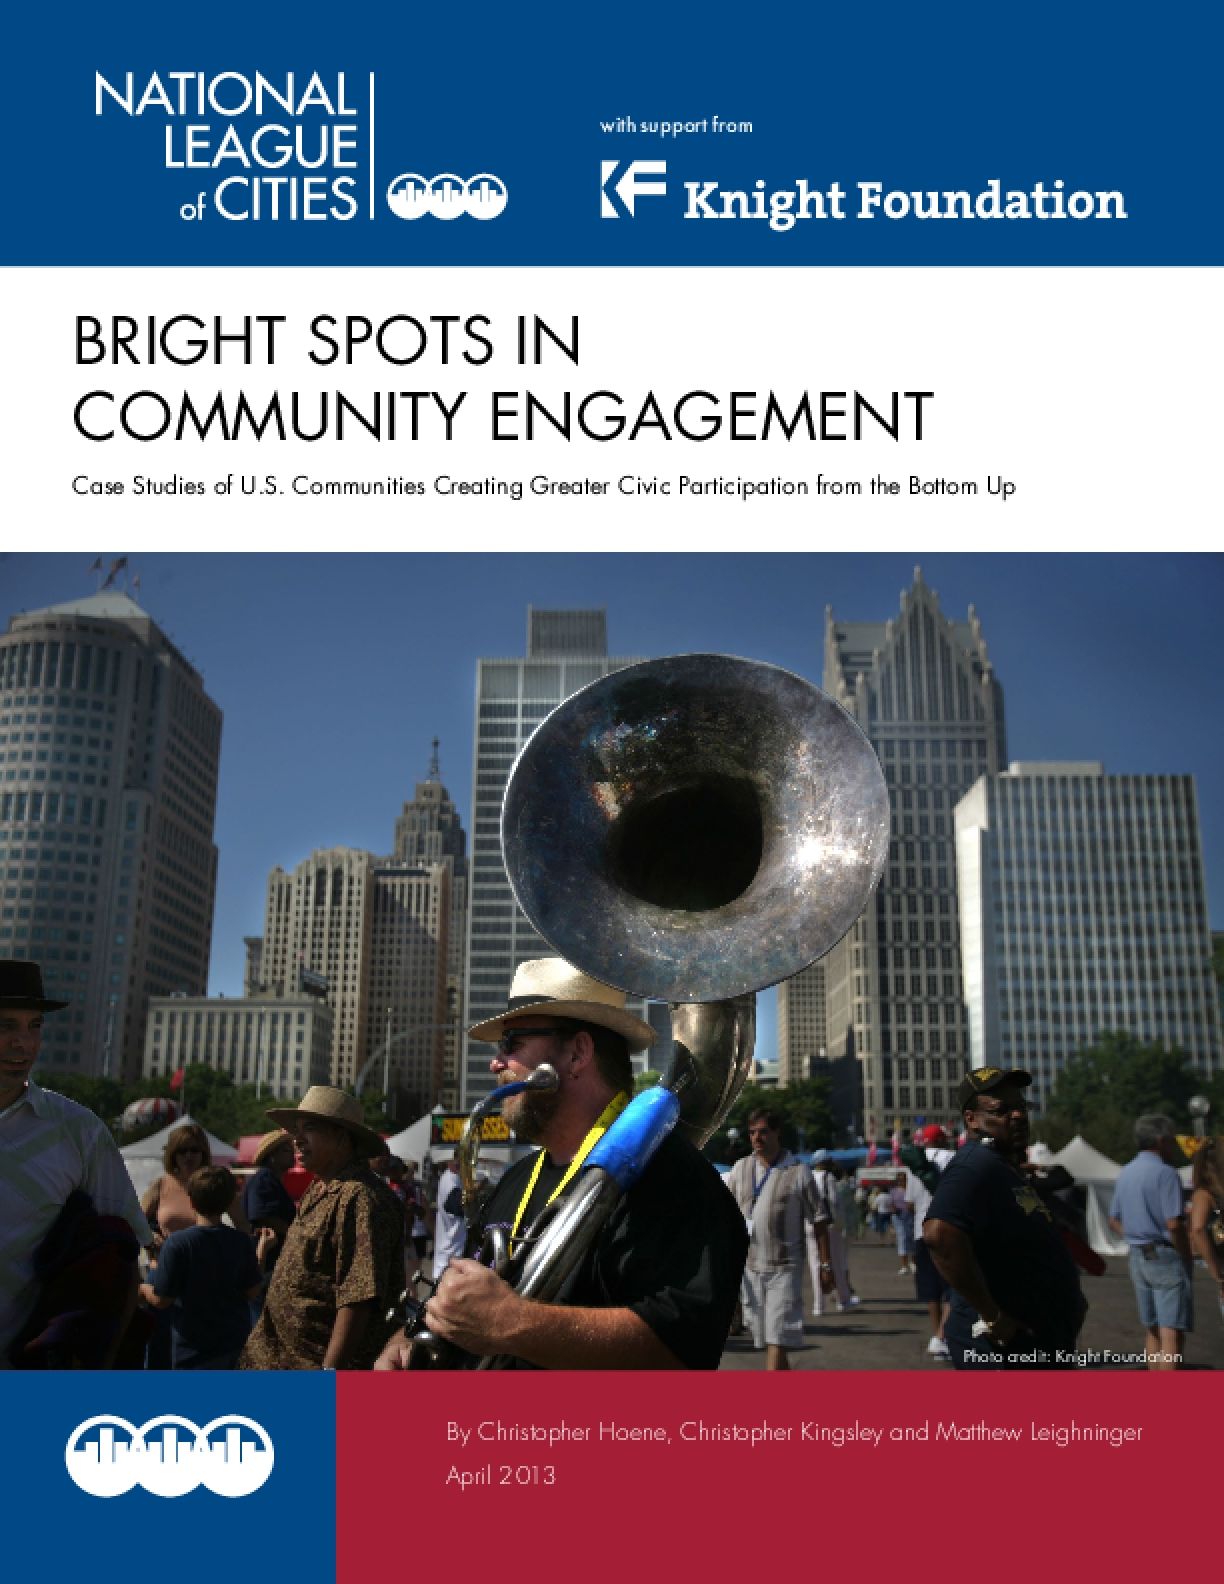 Bright Spots in Community Engagement: Case Studies of U.S. Communities Creating Greater Civic Participation from the Bottom Up